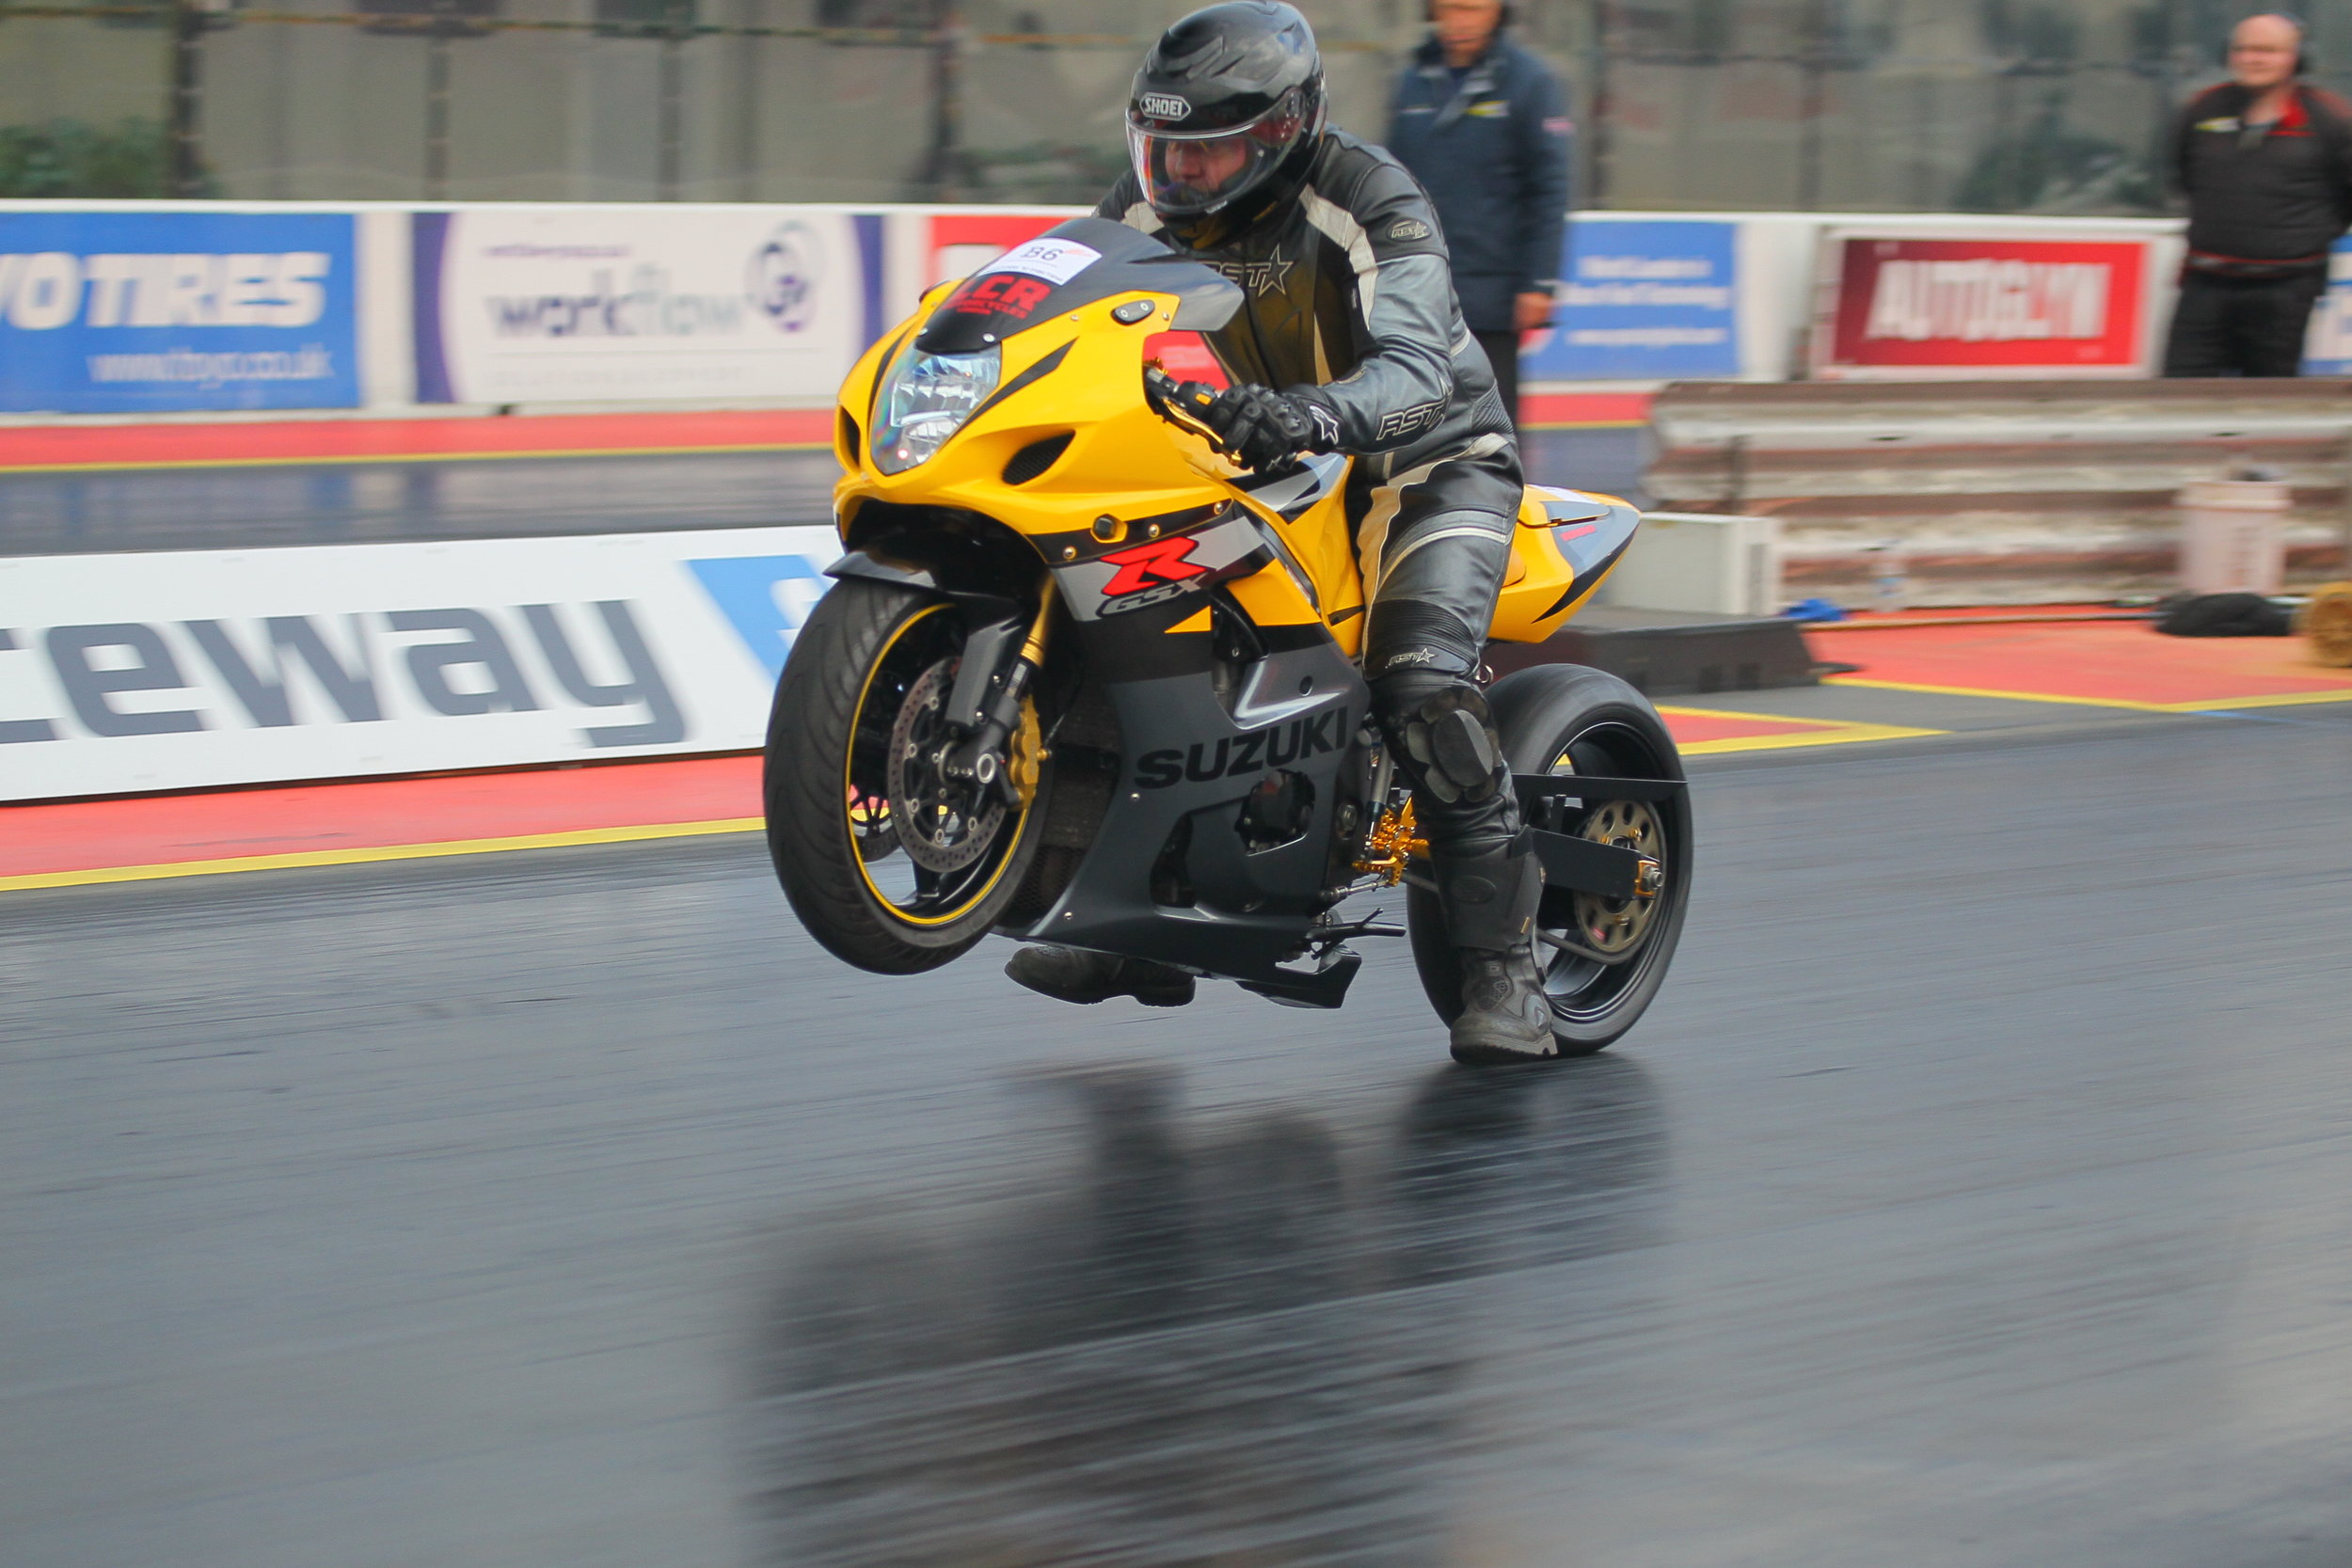 Extreme bike weekendat Santa Pod.The track is not wet just very grippy i think i need a new lockup clutch.